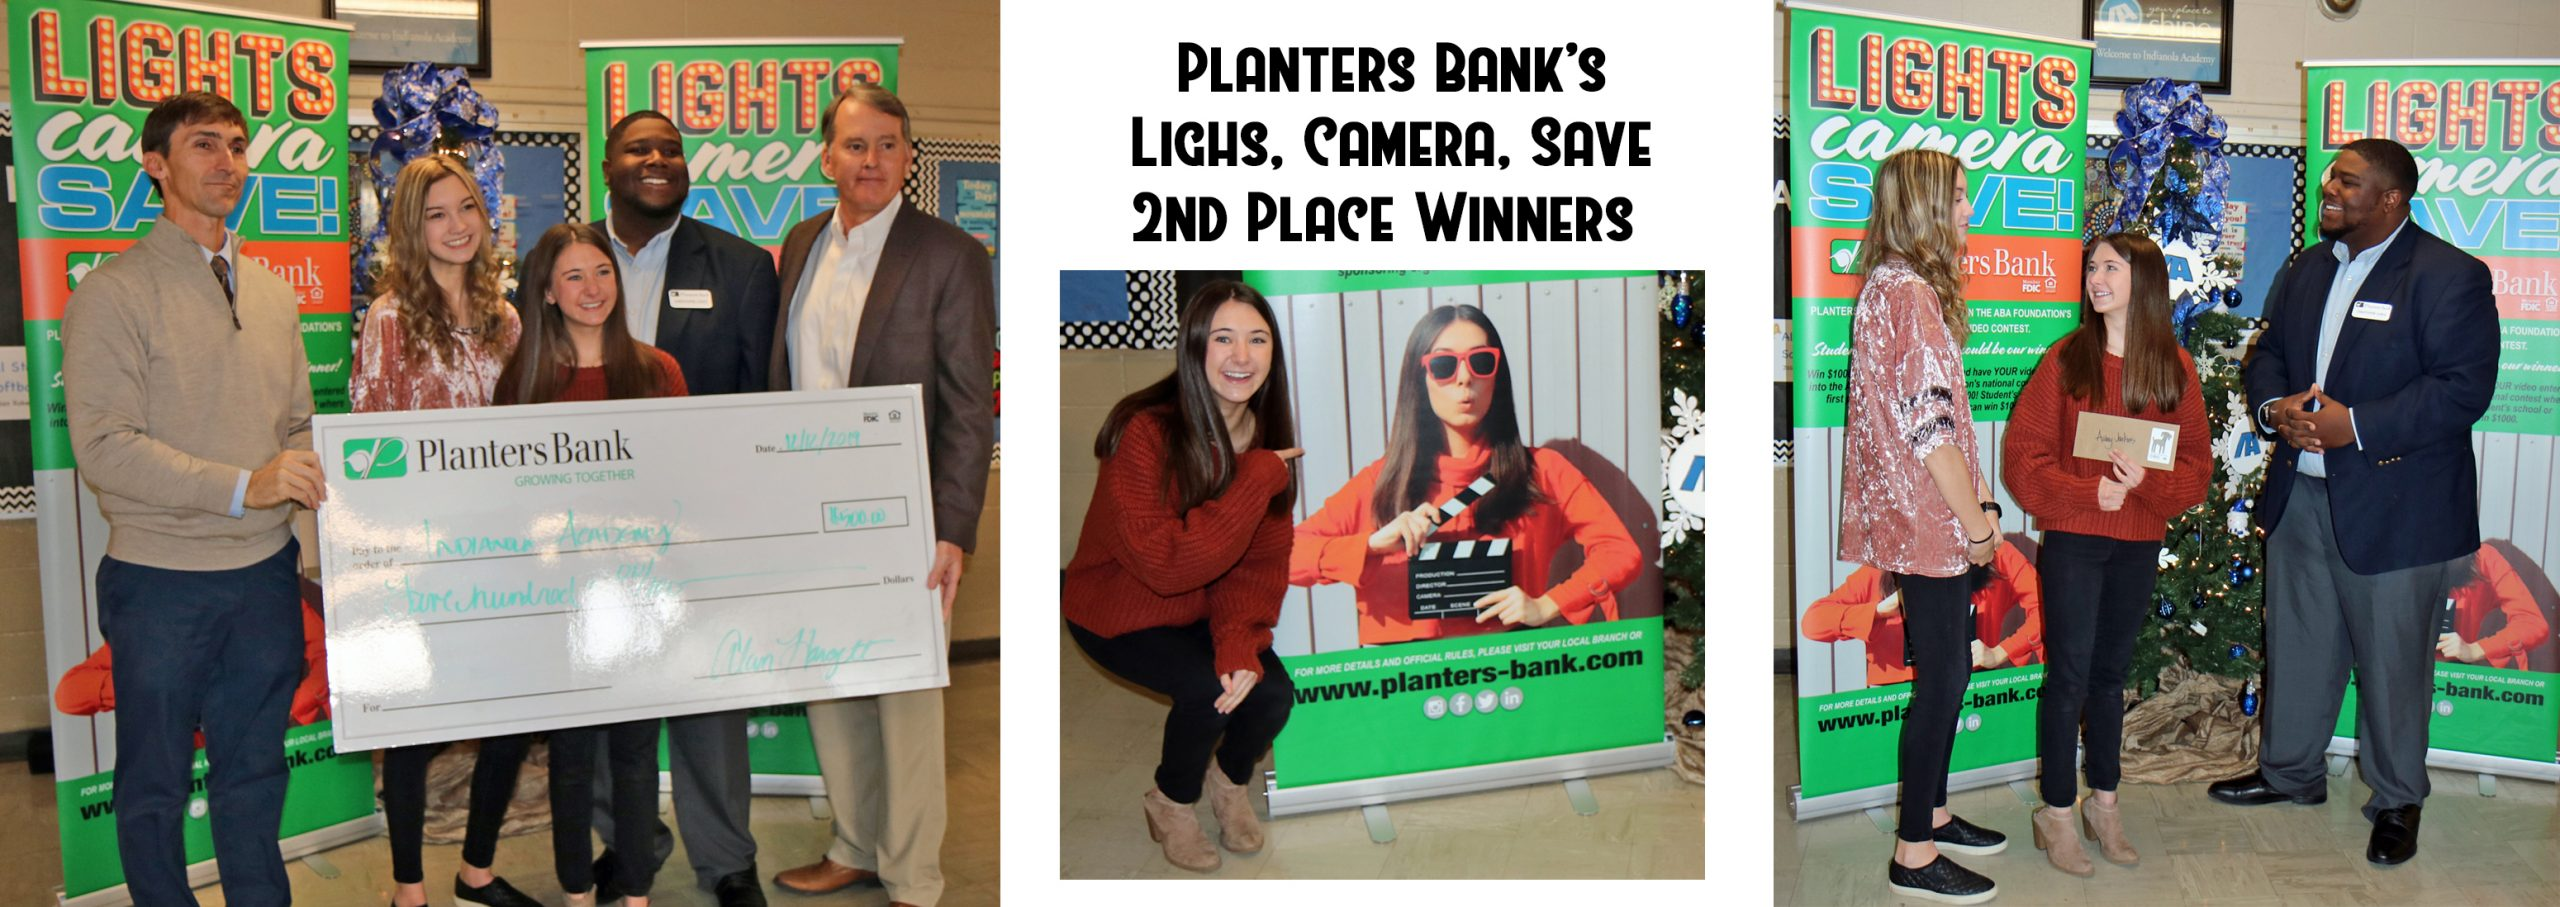 Audrey Jenkins and Kristi Ray won $500 for placing second in the Planters Bank Lights, Camera, Save video contest.